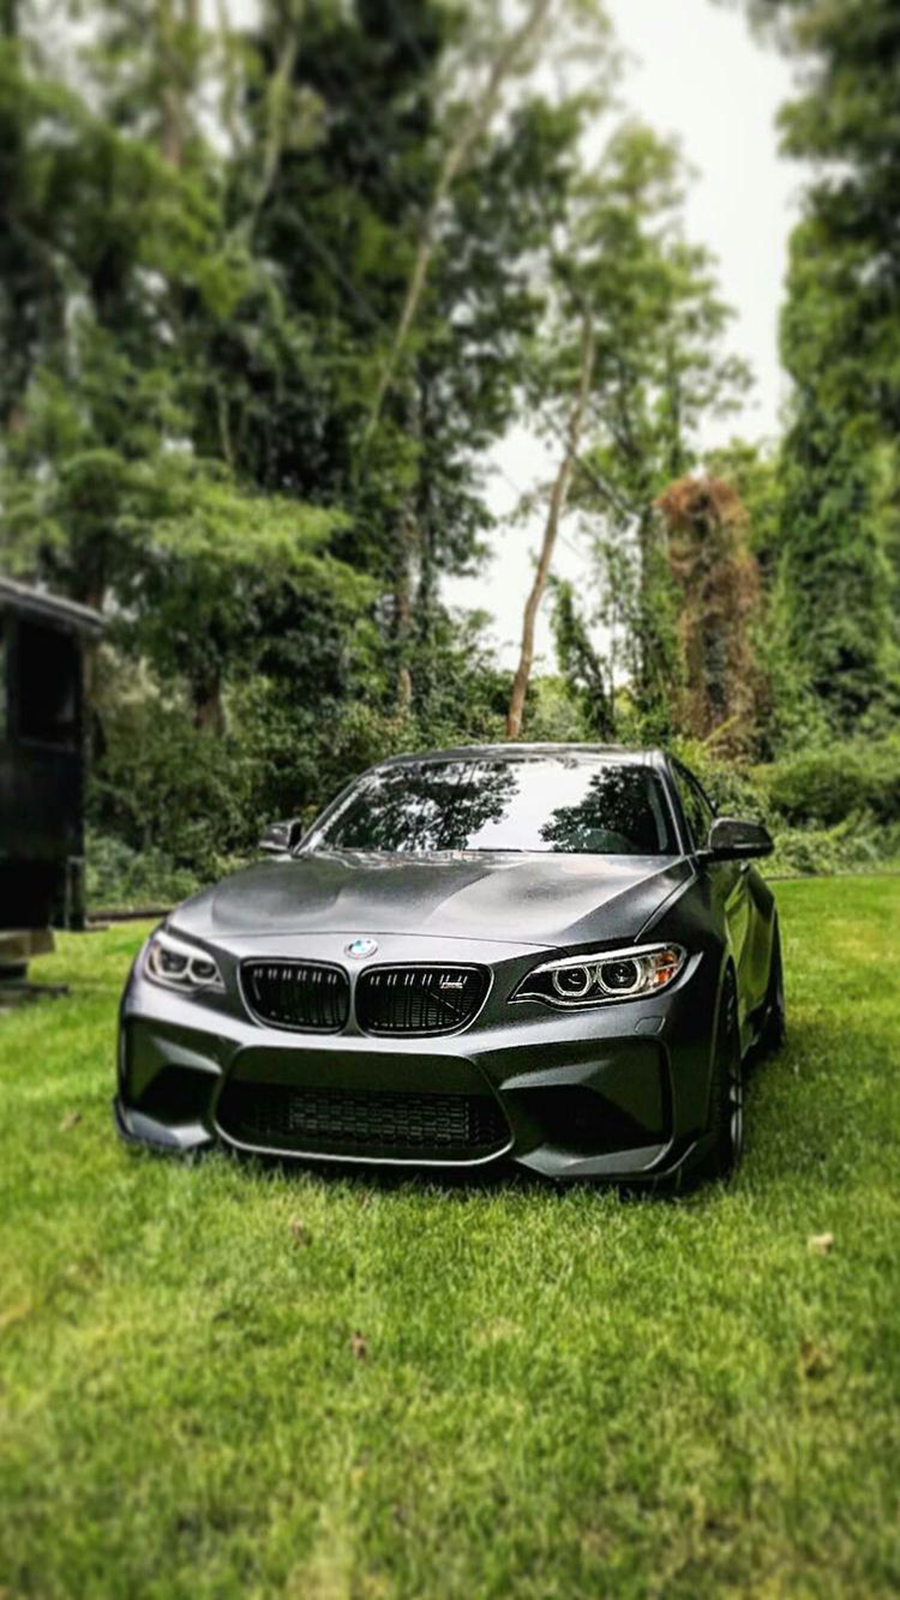 New Bmw Wallpaper – Most Popular BMW Wallpapers Free Download